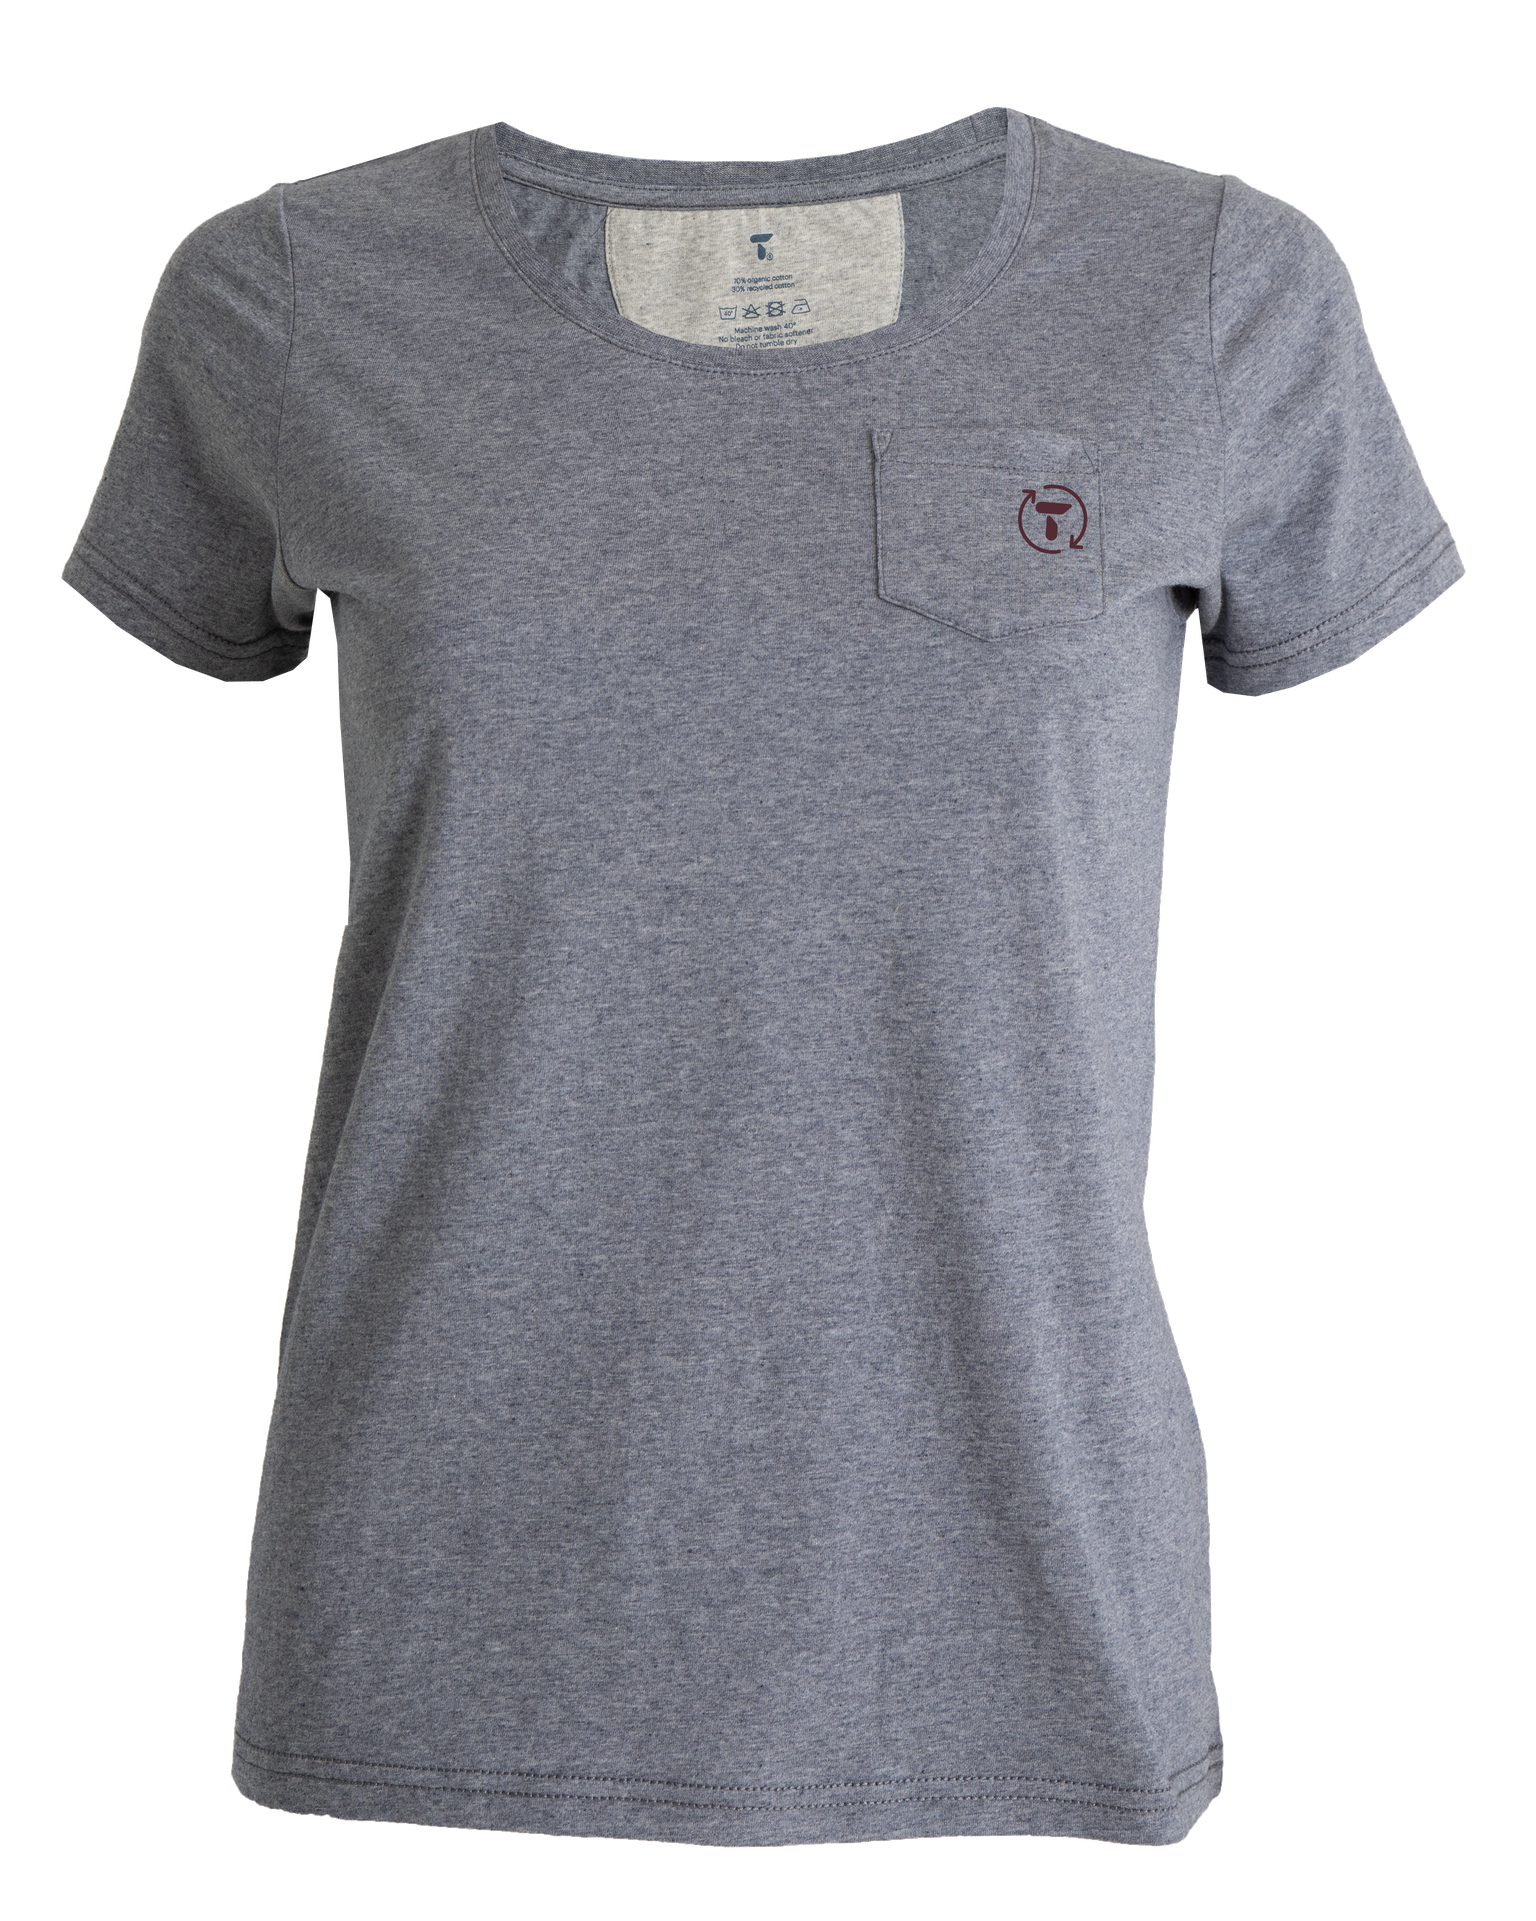 Tufte Womens Eco Blend Green City Tee